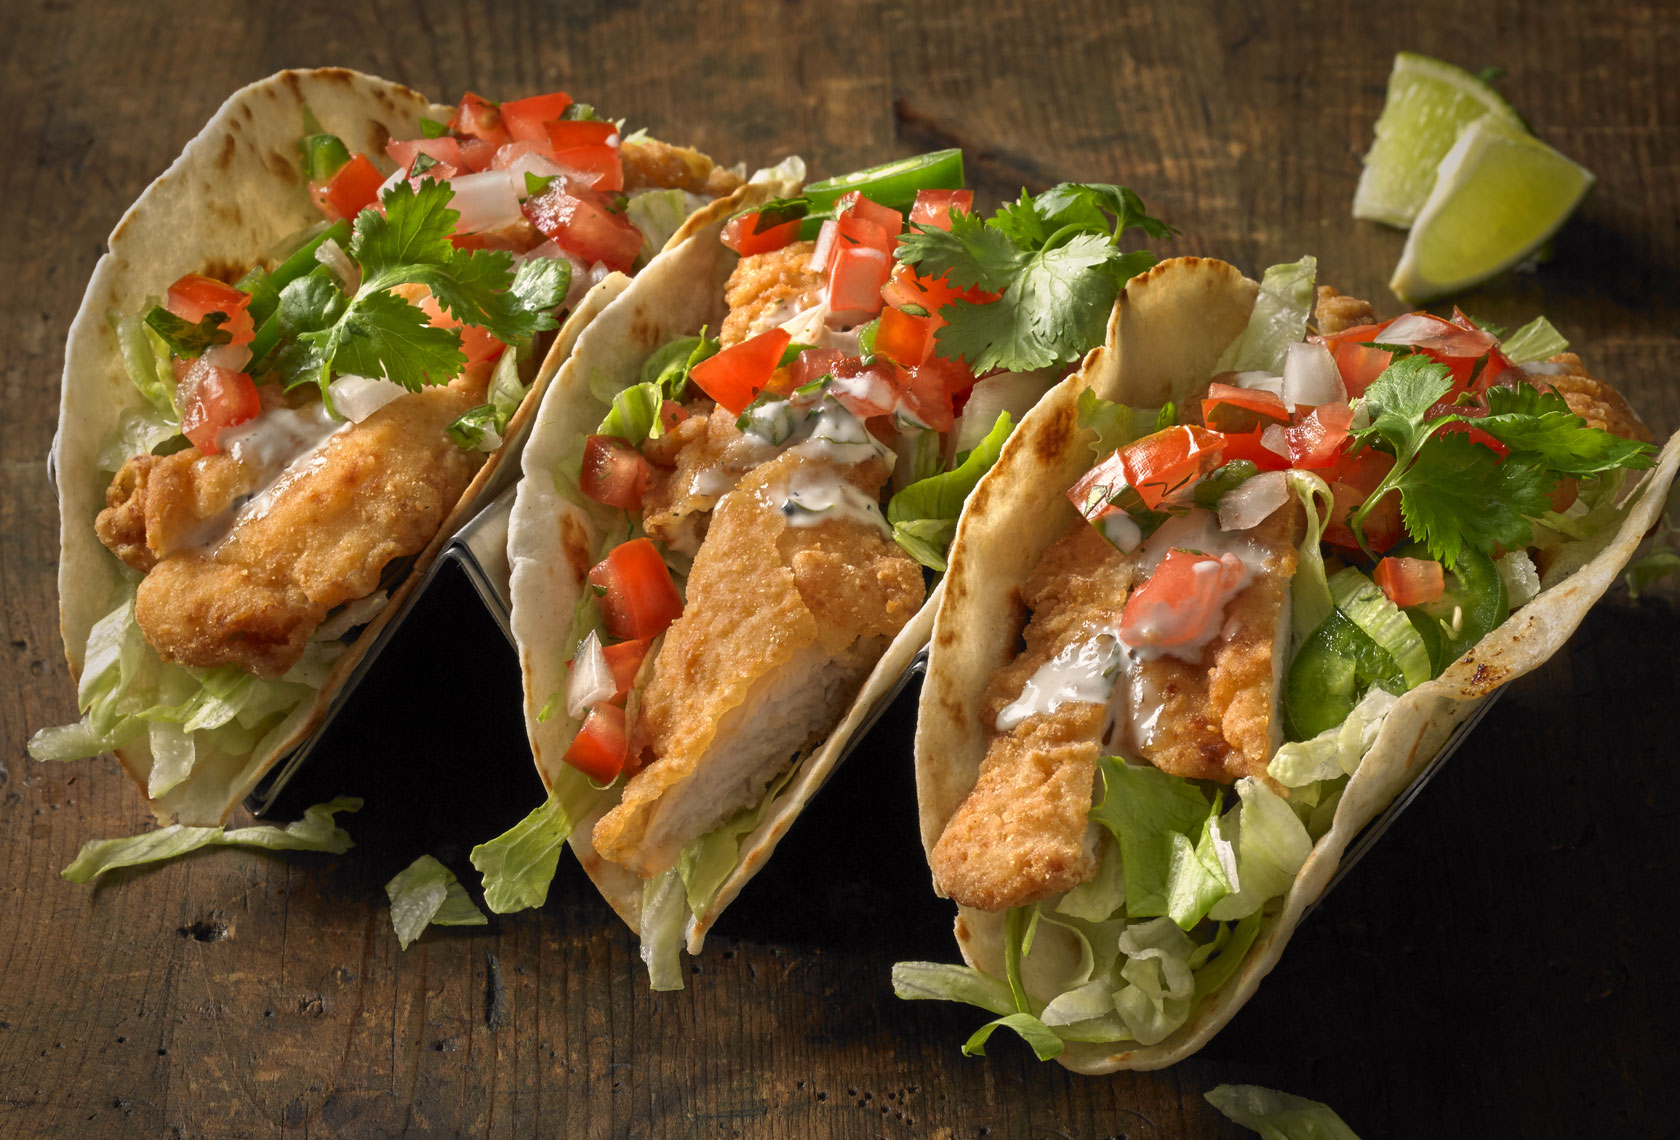 3 Soft shell chicken tacos/holder/barnwood/food photography